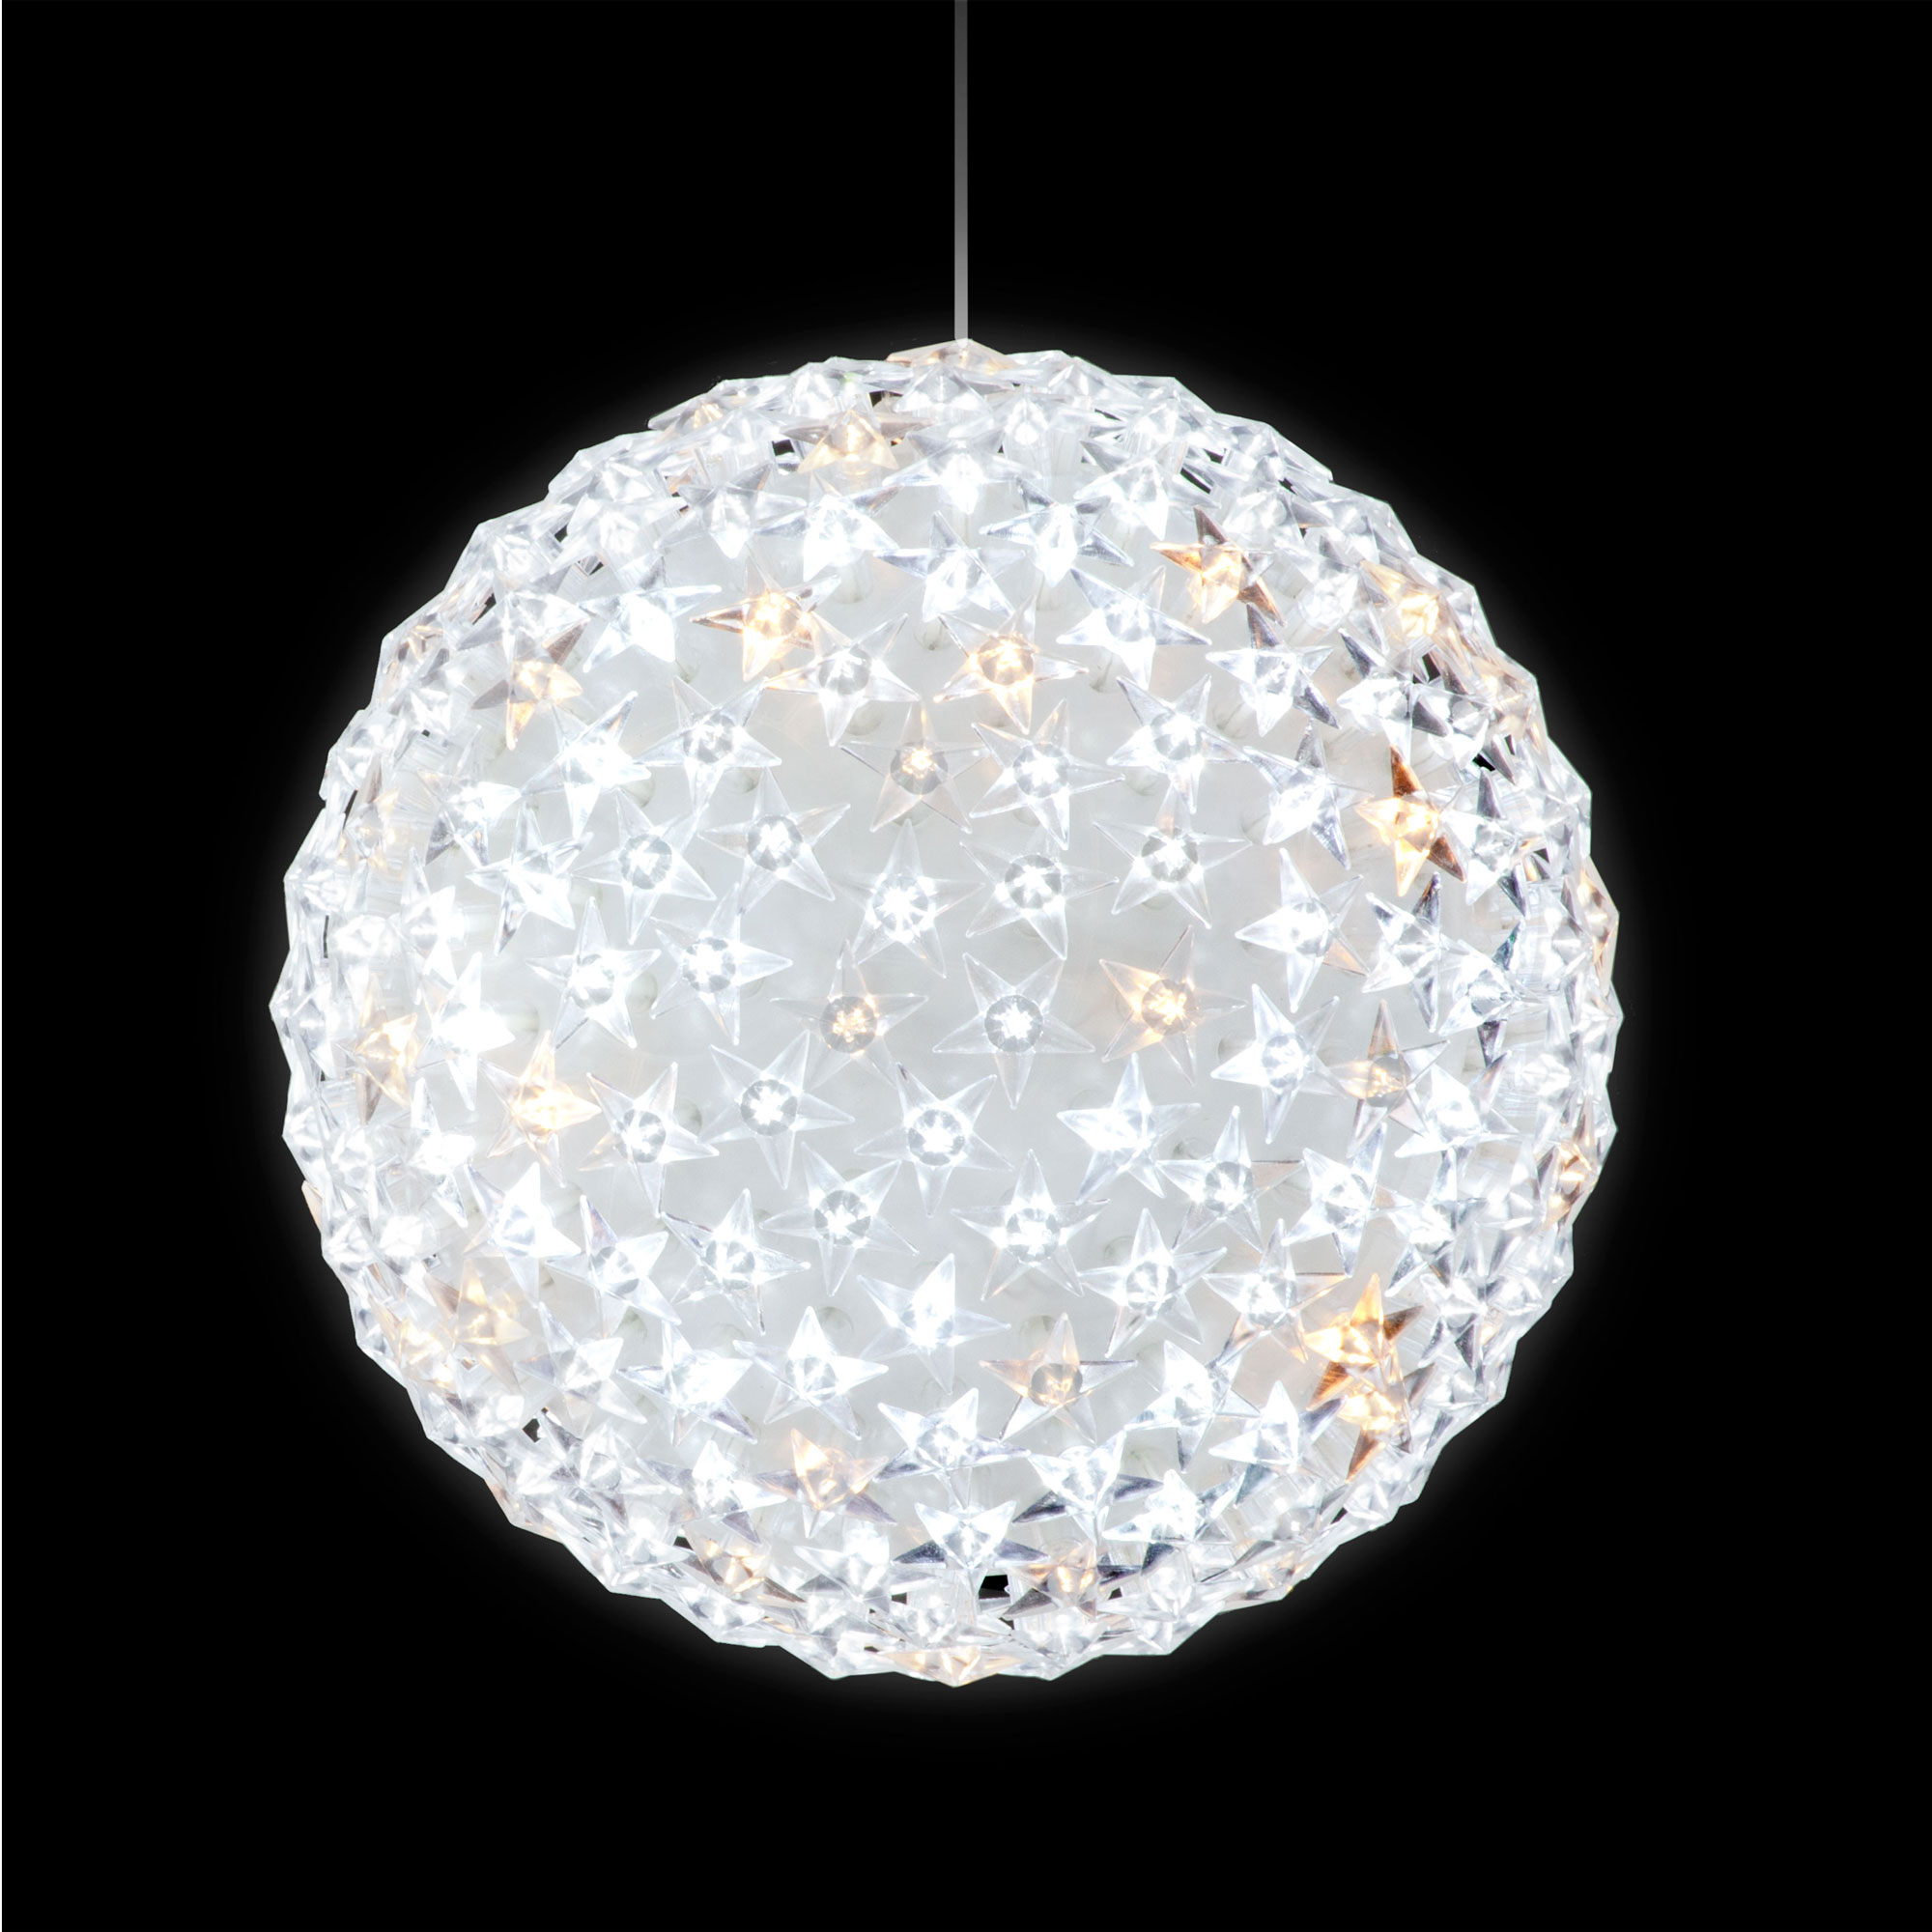 Christmas Decoration 20cm Diameter Starlight Ball With 160 IW LEDs & 40 Warm White Flash